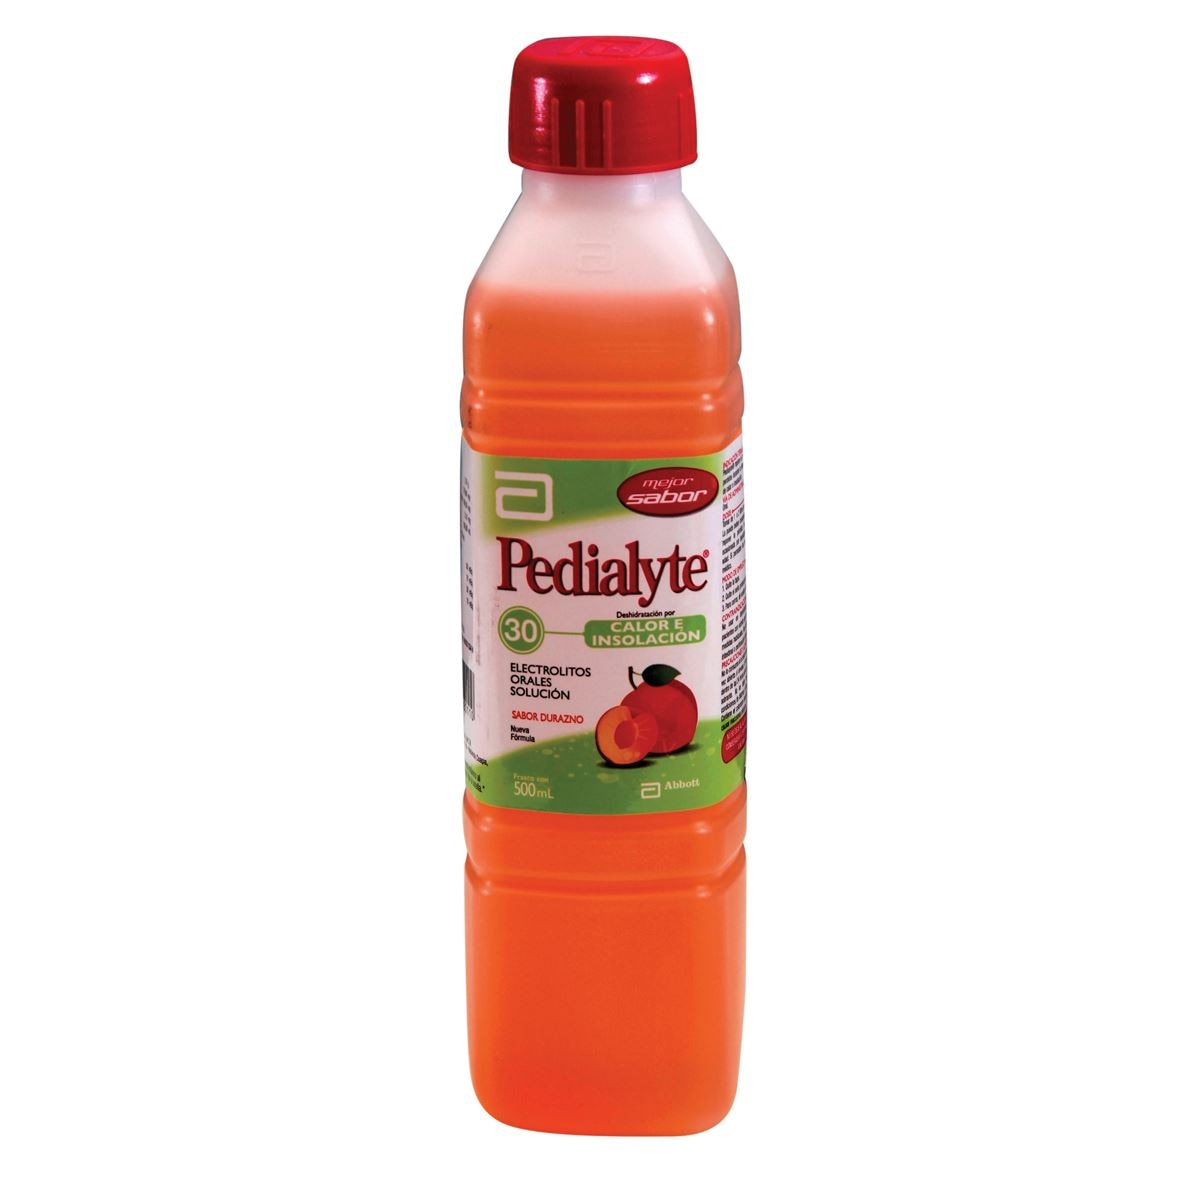 Pedialyte durazno 500ml